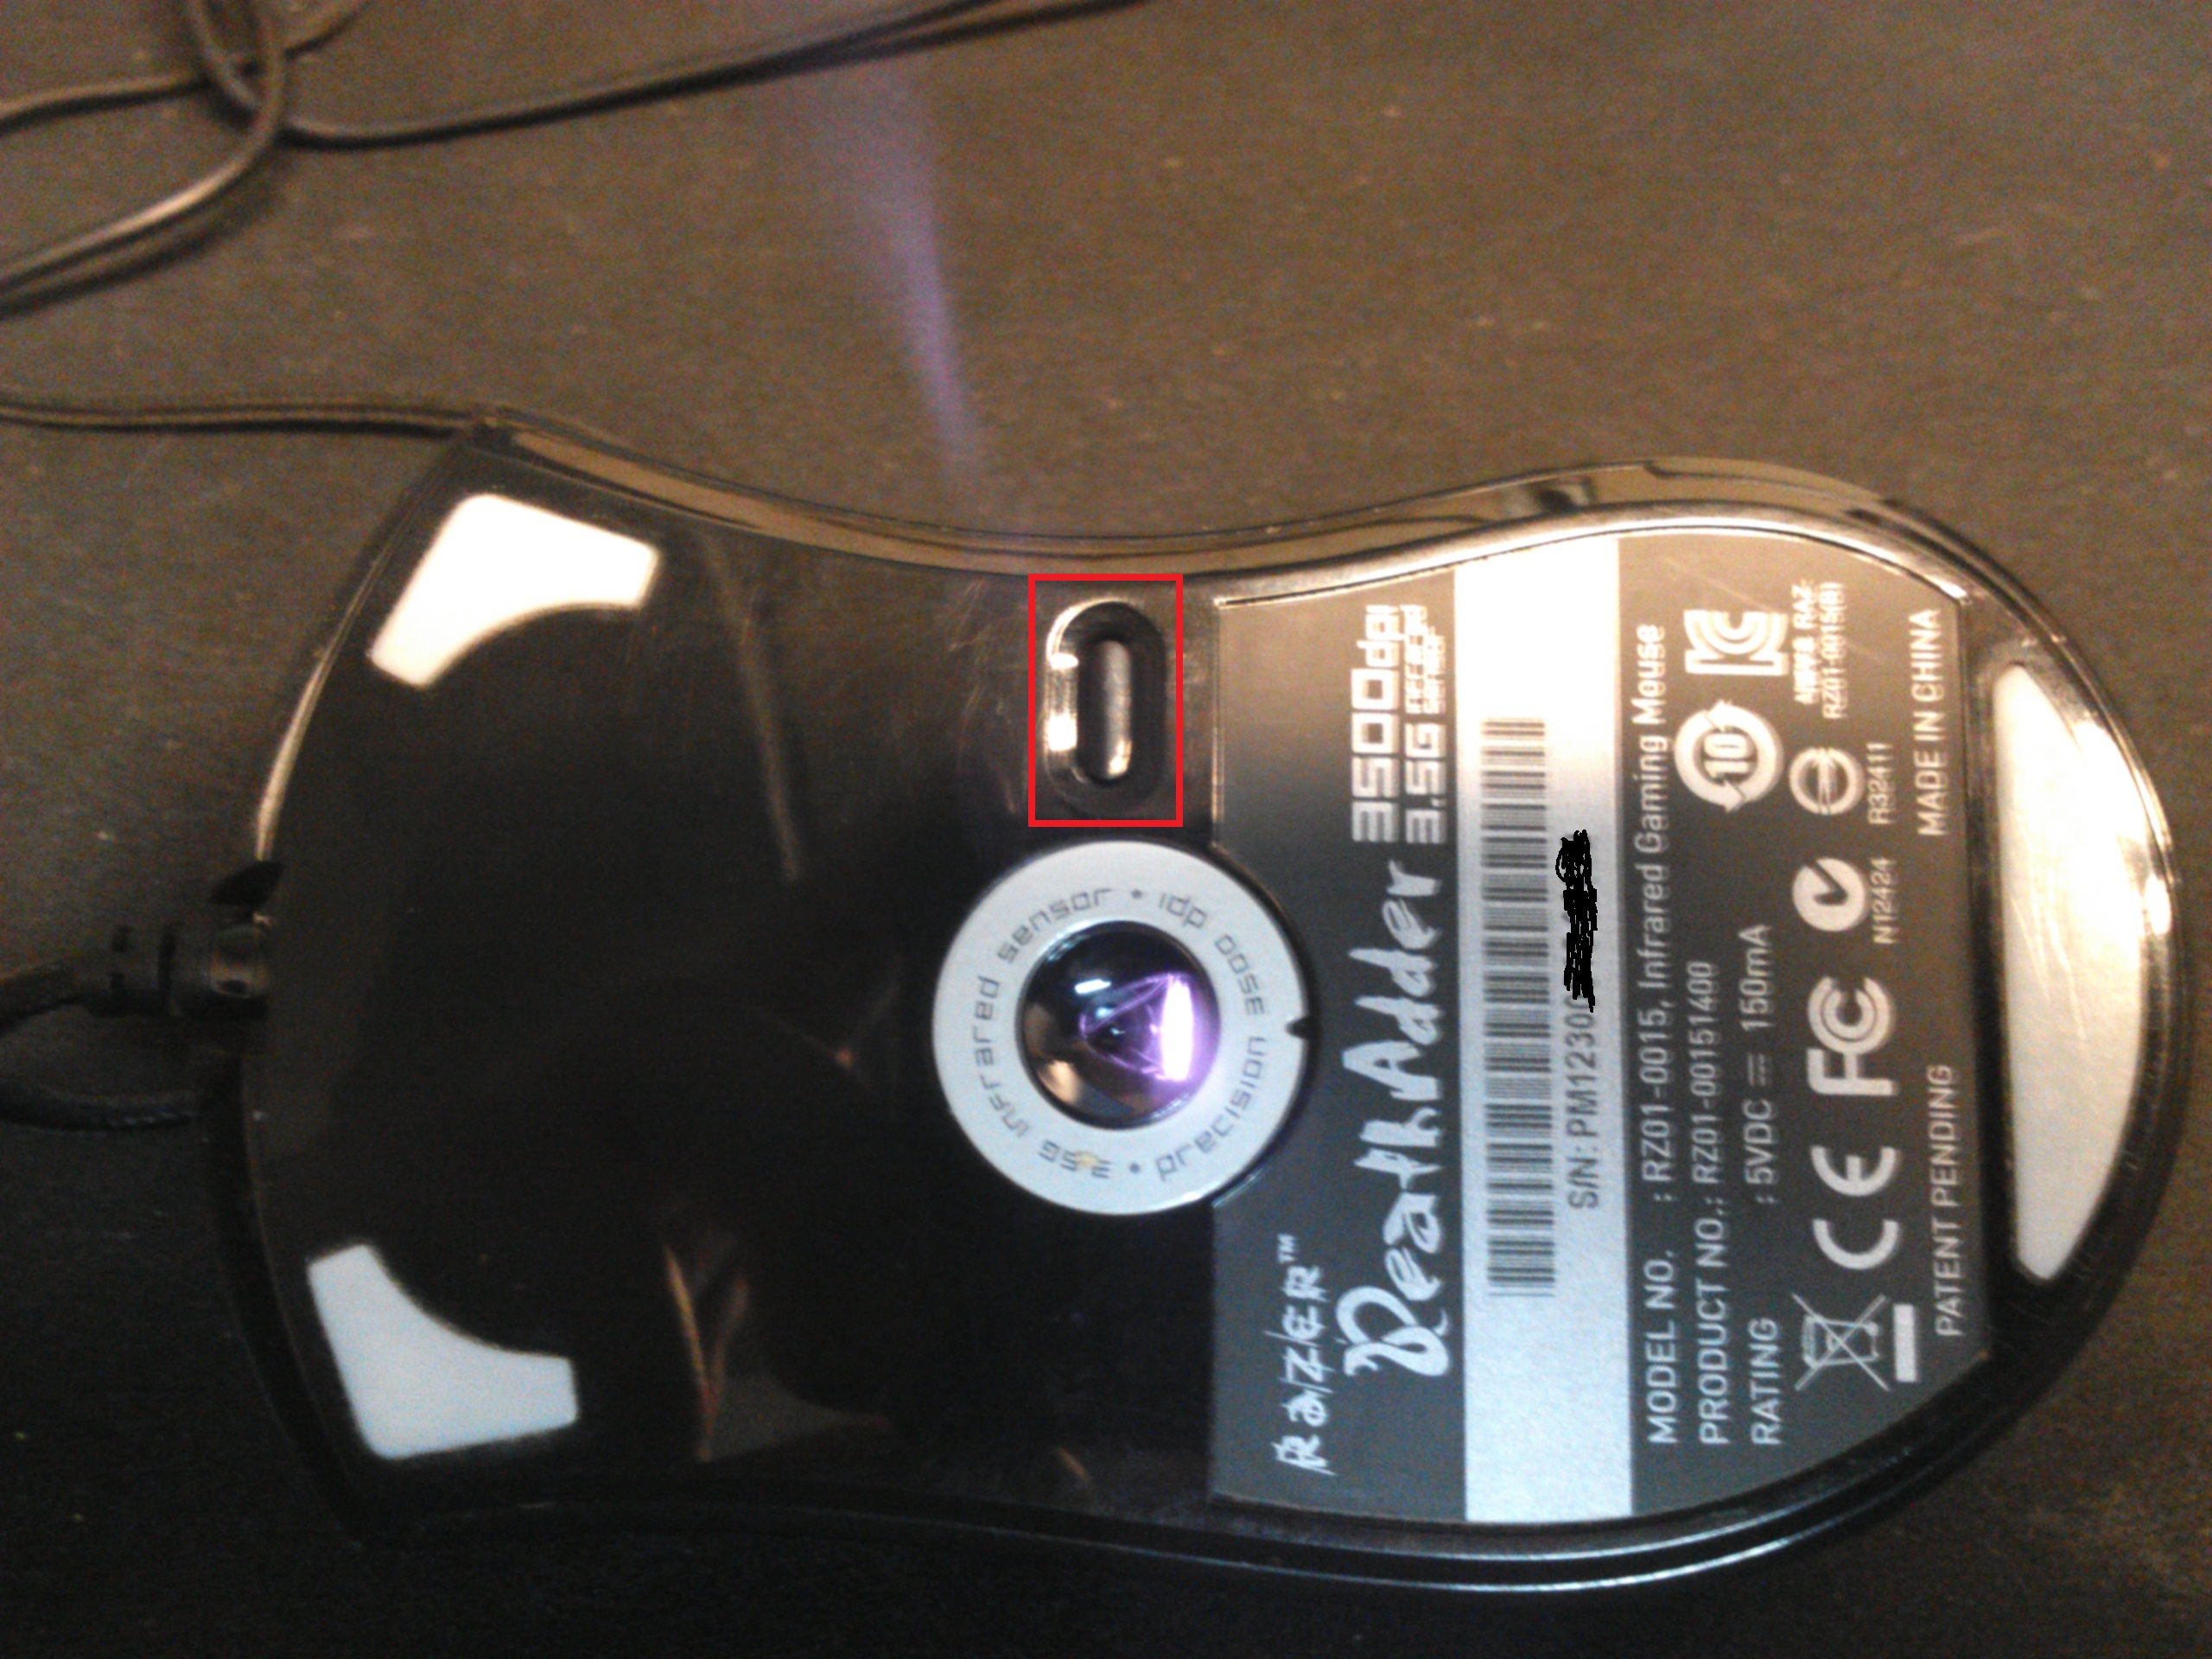 So the Deathadder 2013 can't change the DPI on the fly